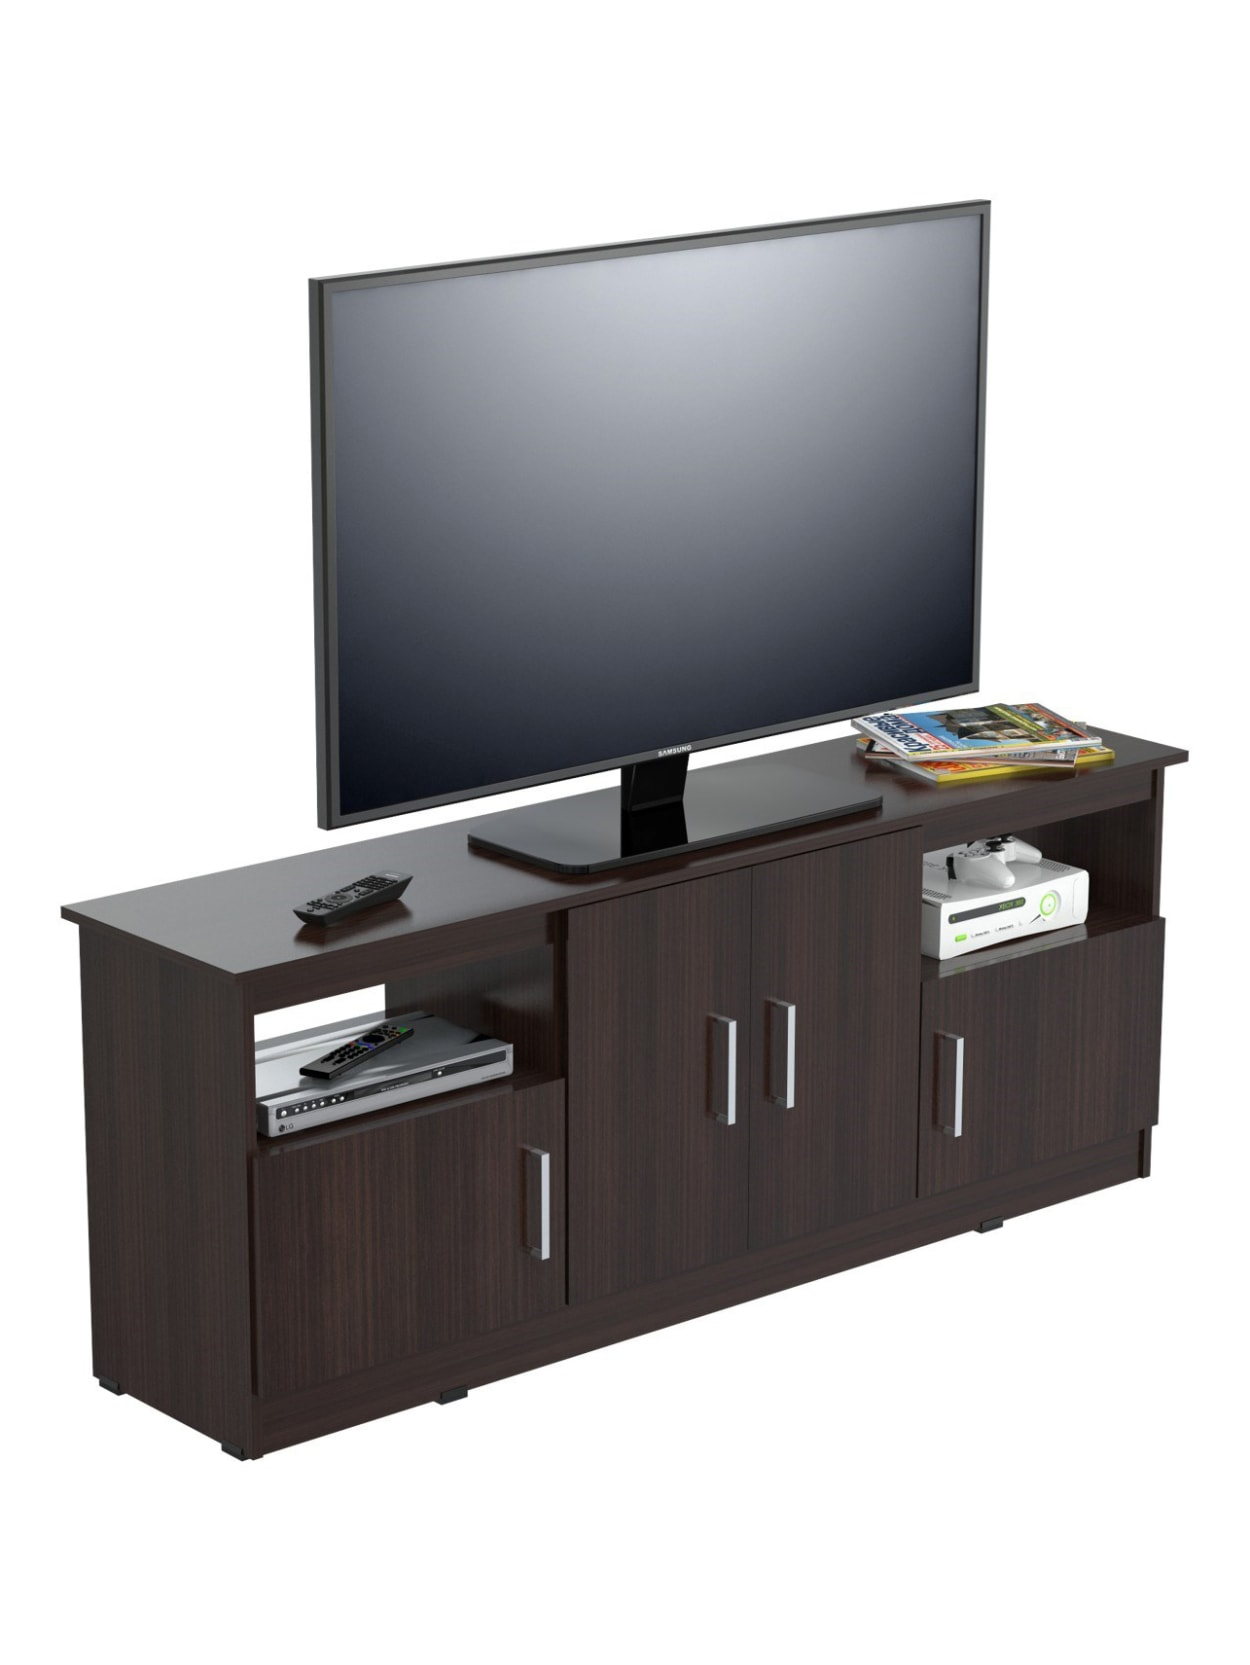 Inval Flat Screen Tv Stand For 60 Tvs 63 W Espresso Wengue Office Depot